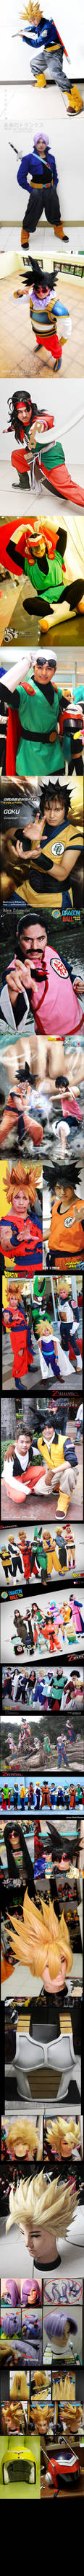 My Dragonball Cosplays and Craftings